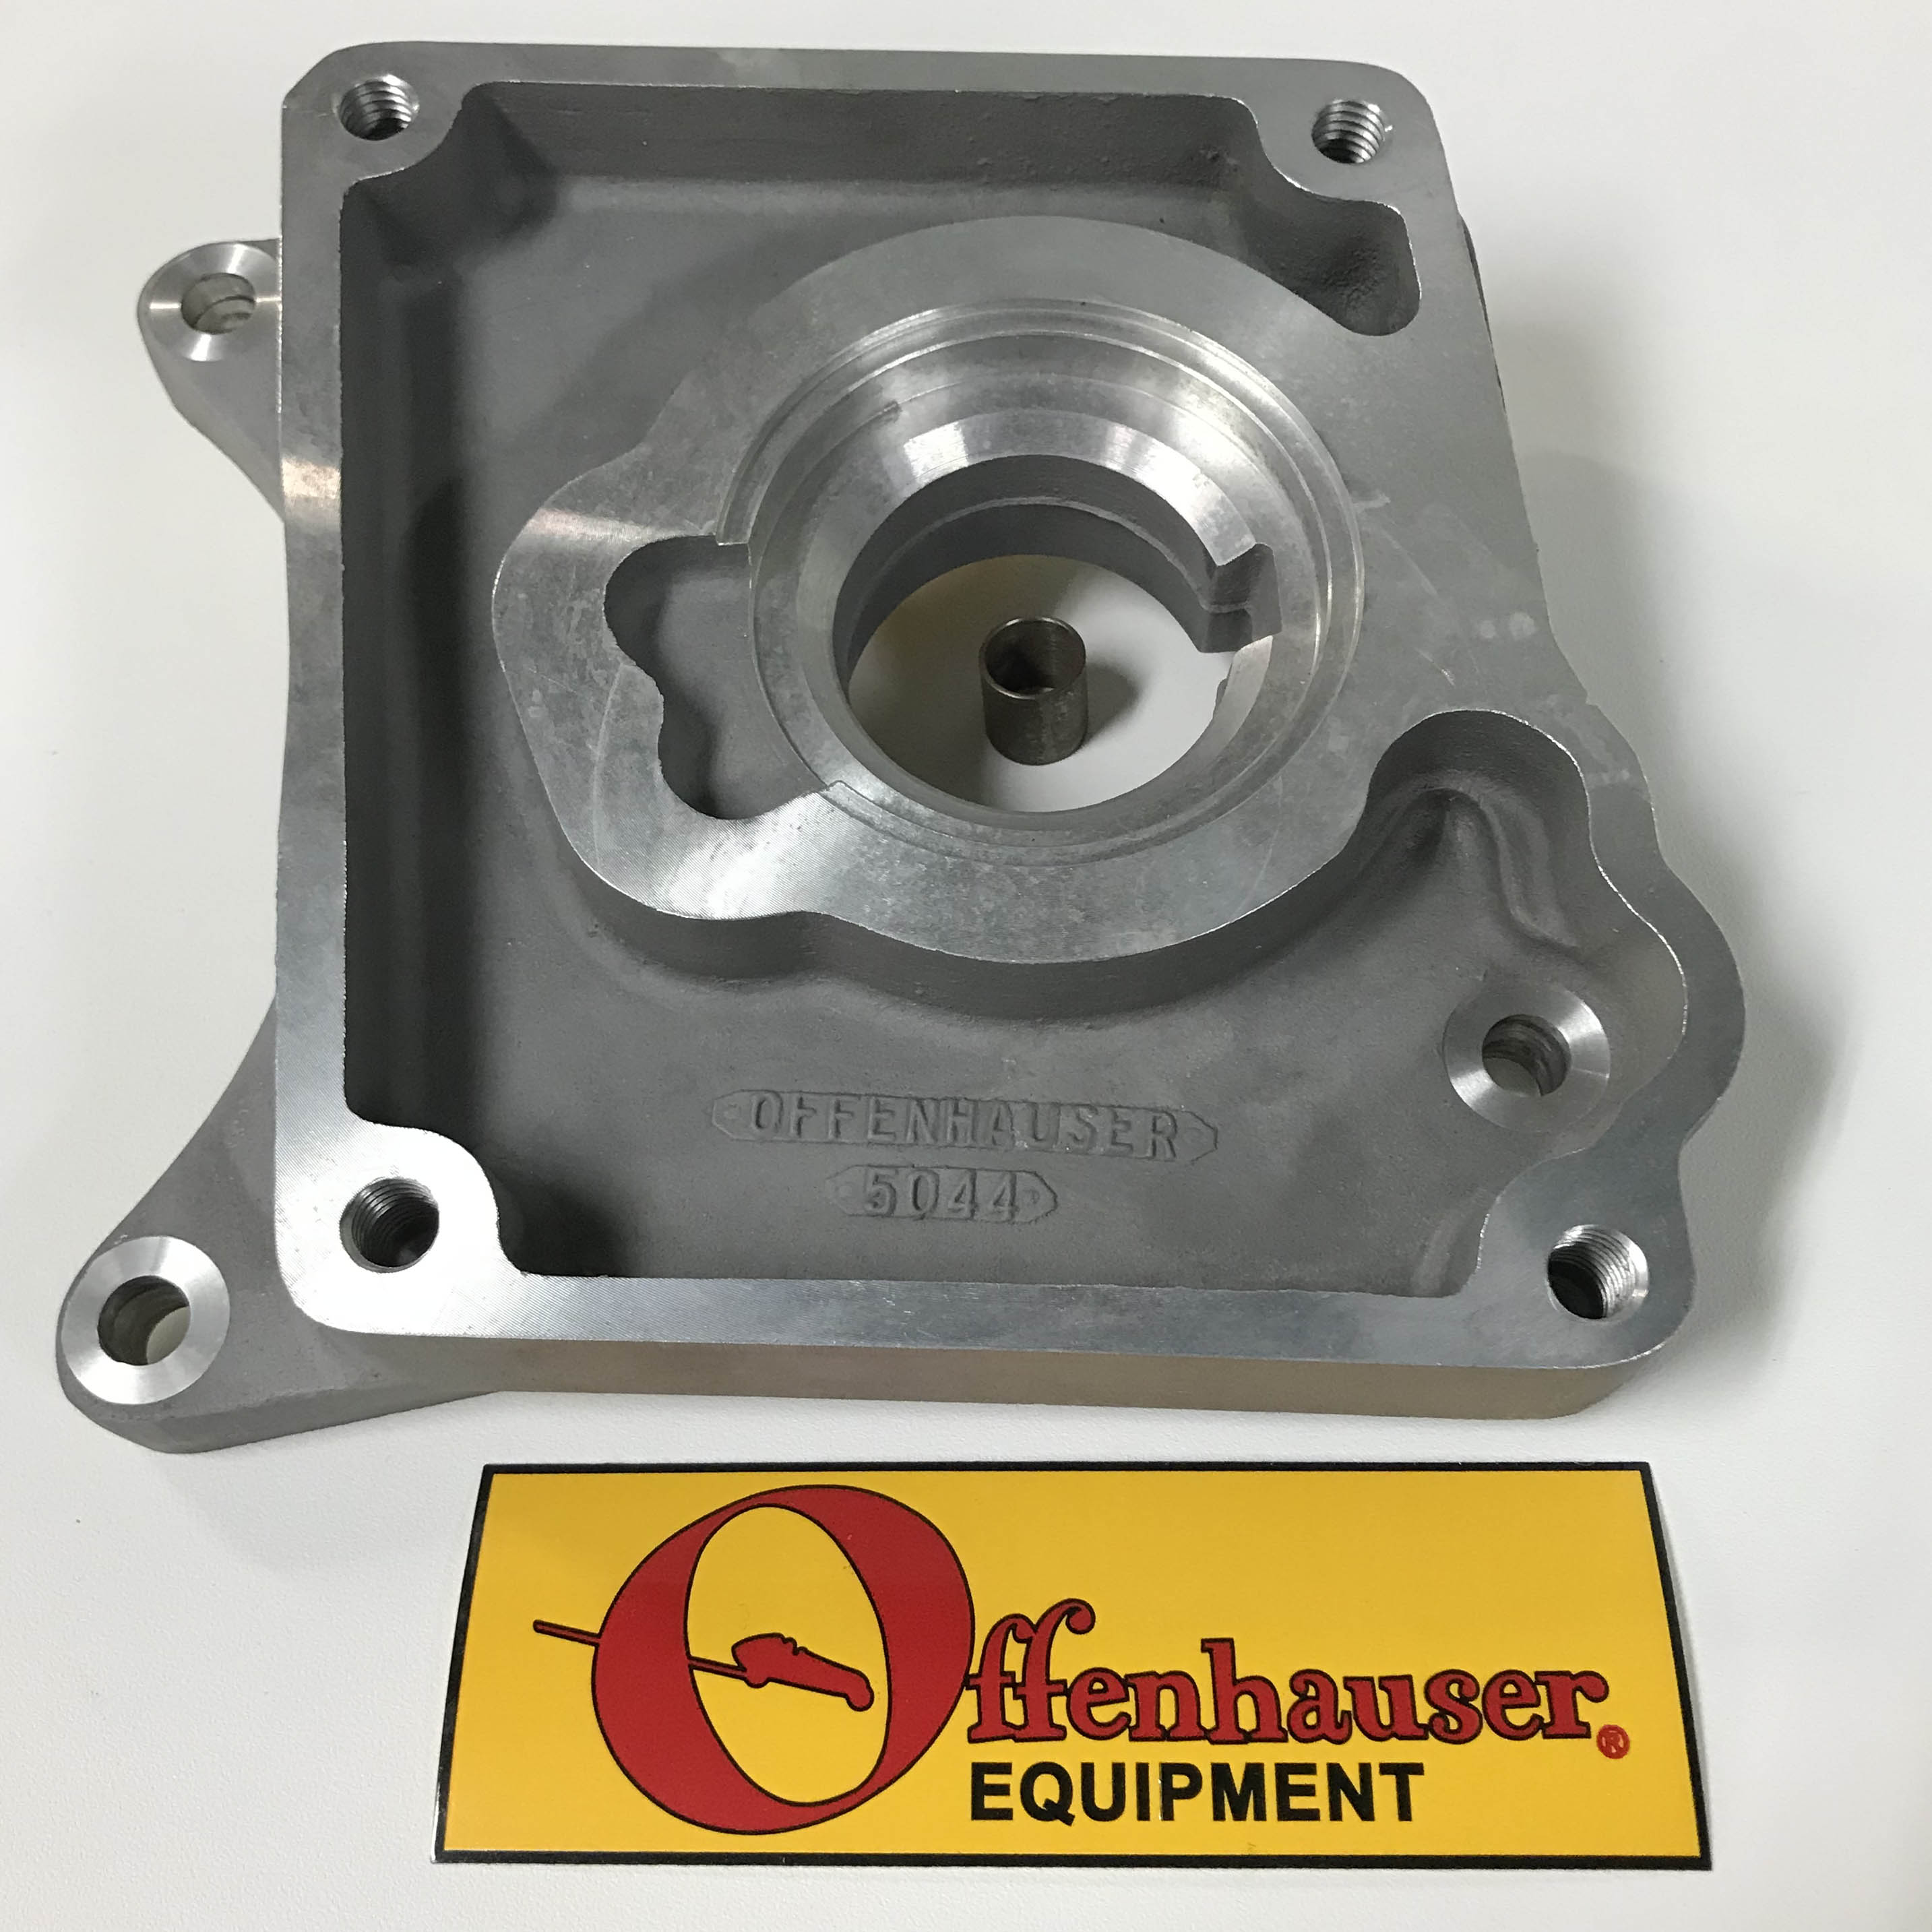 Offenhauser Engine Adapter 49-64 FORD or 51-64 MERC Trans. Bolt Flange to Cad- LaSalle Trans.